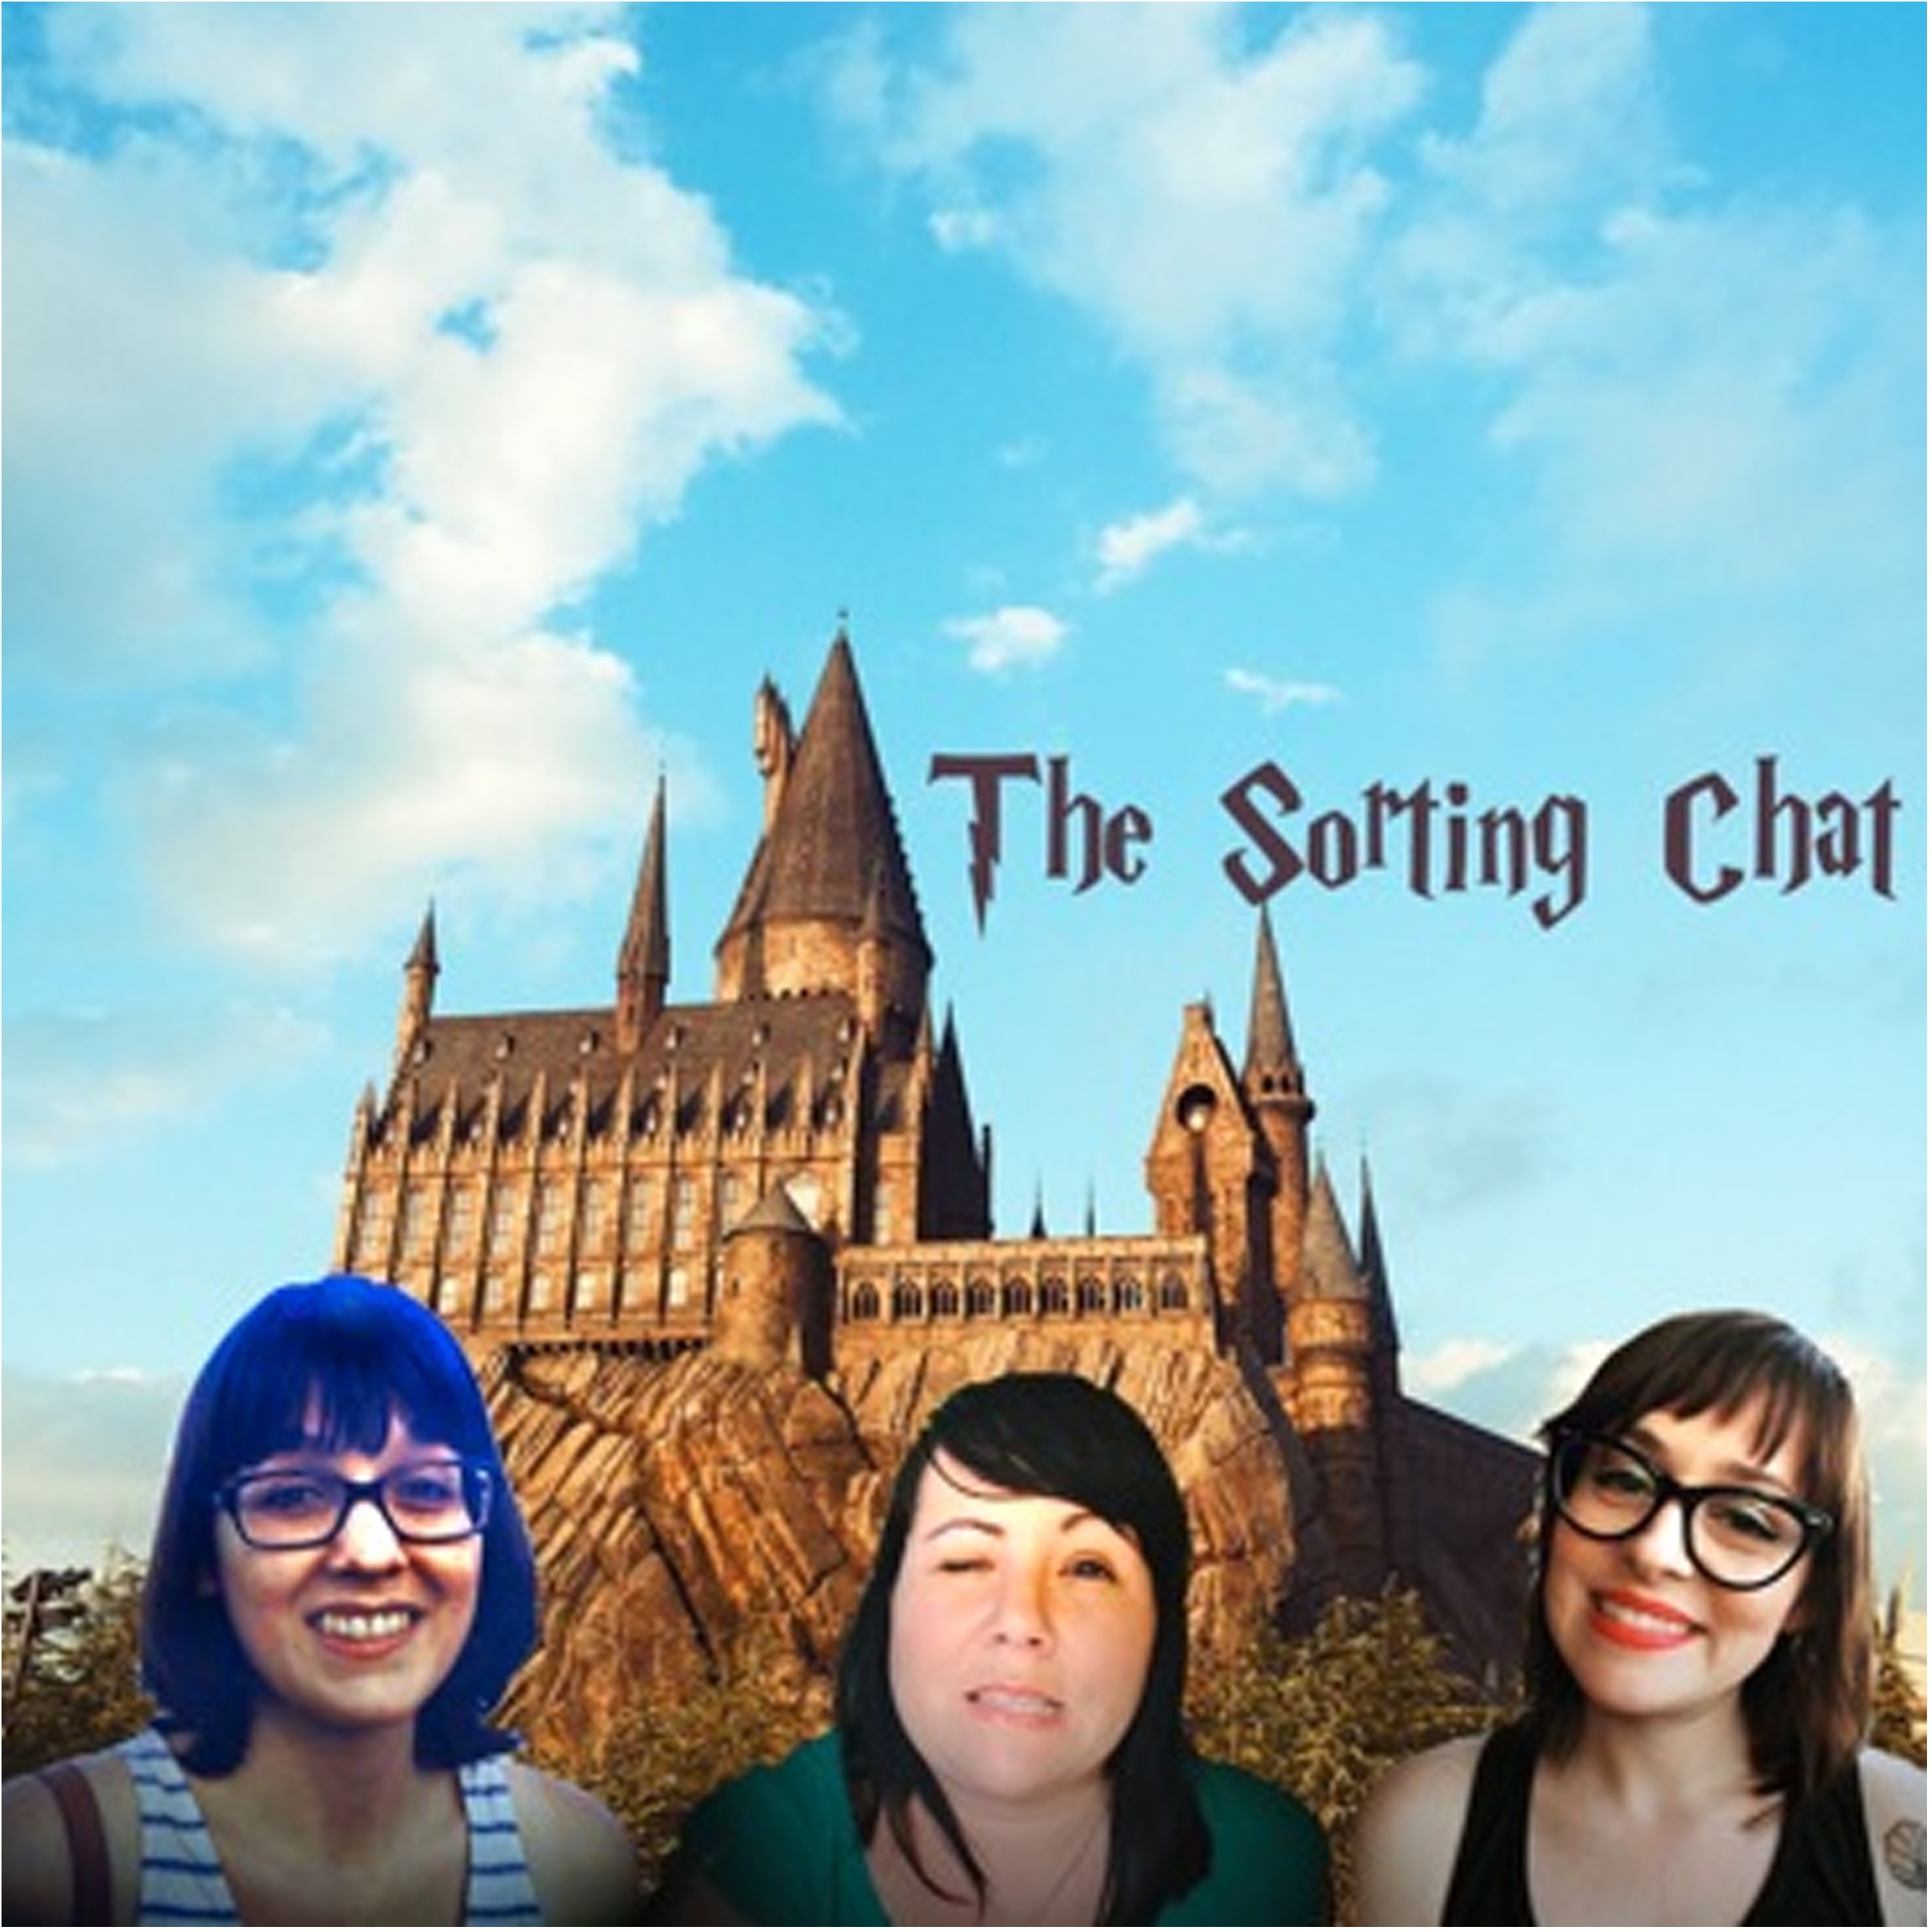 The Sorting Chat